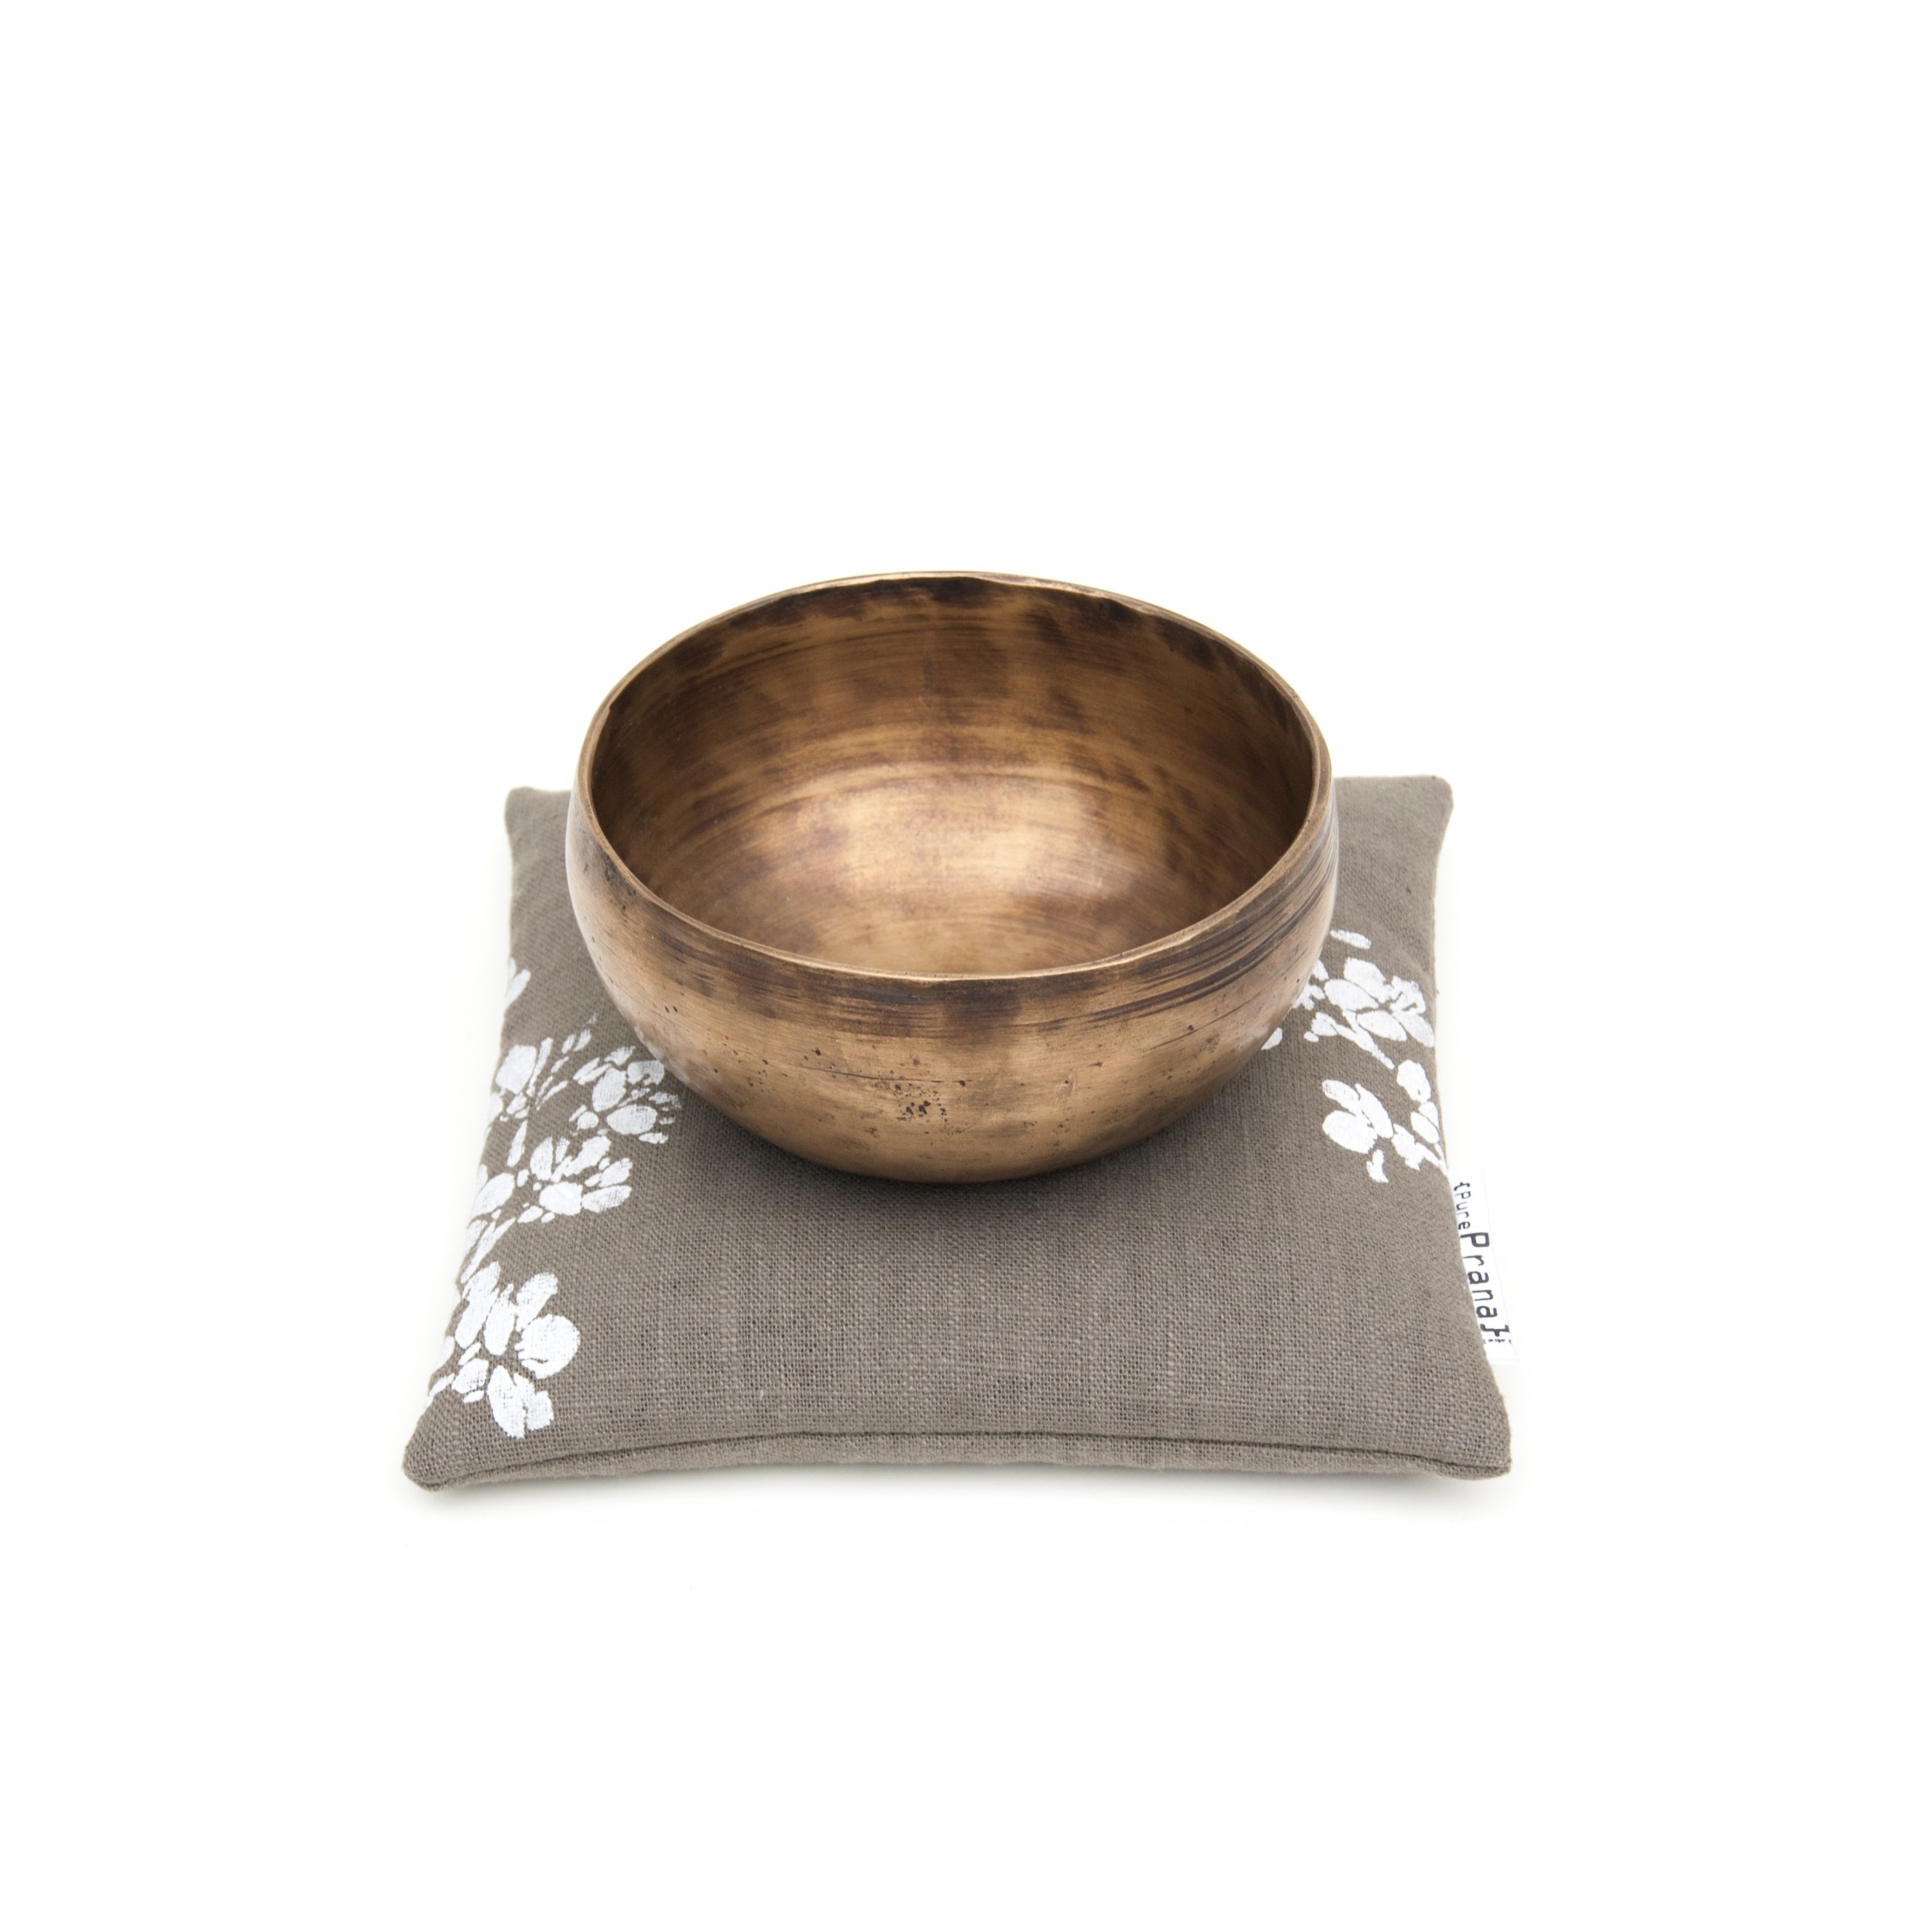 Singing bowl pillow in olive green